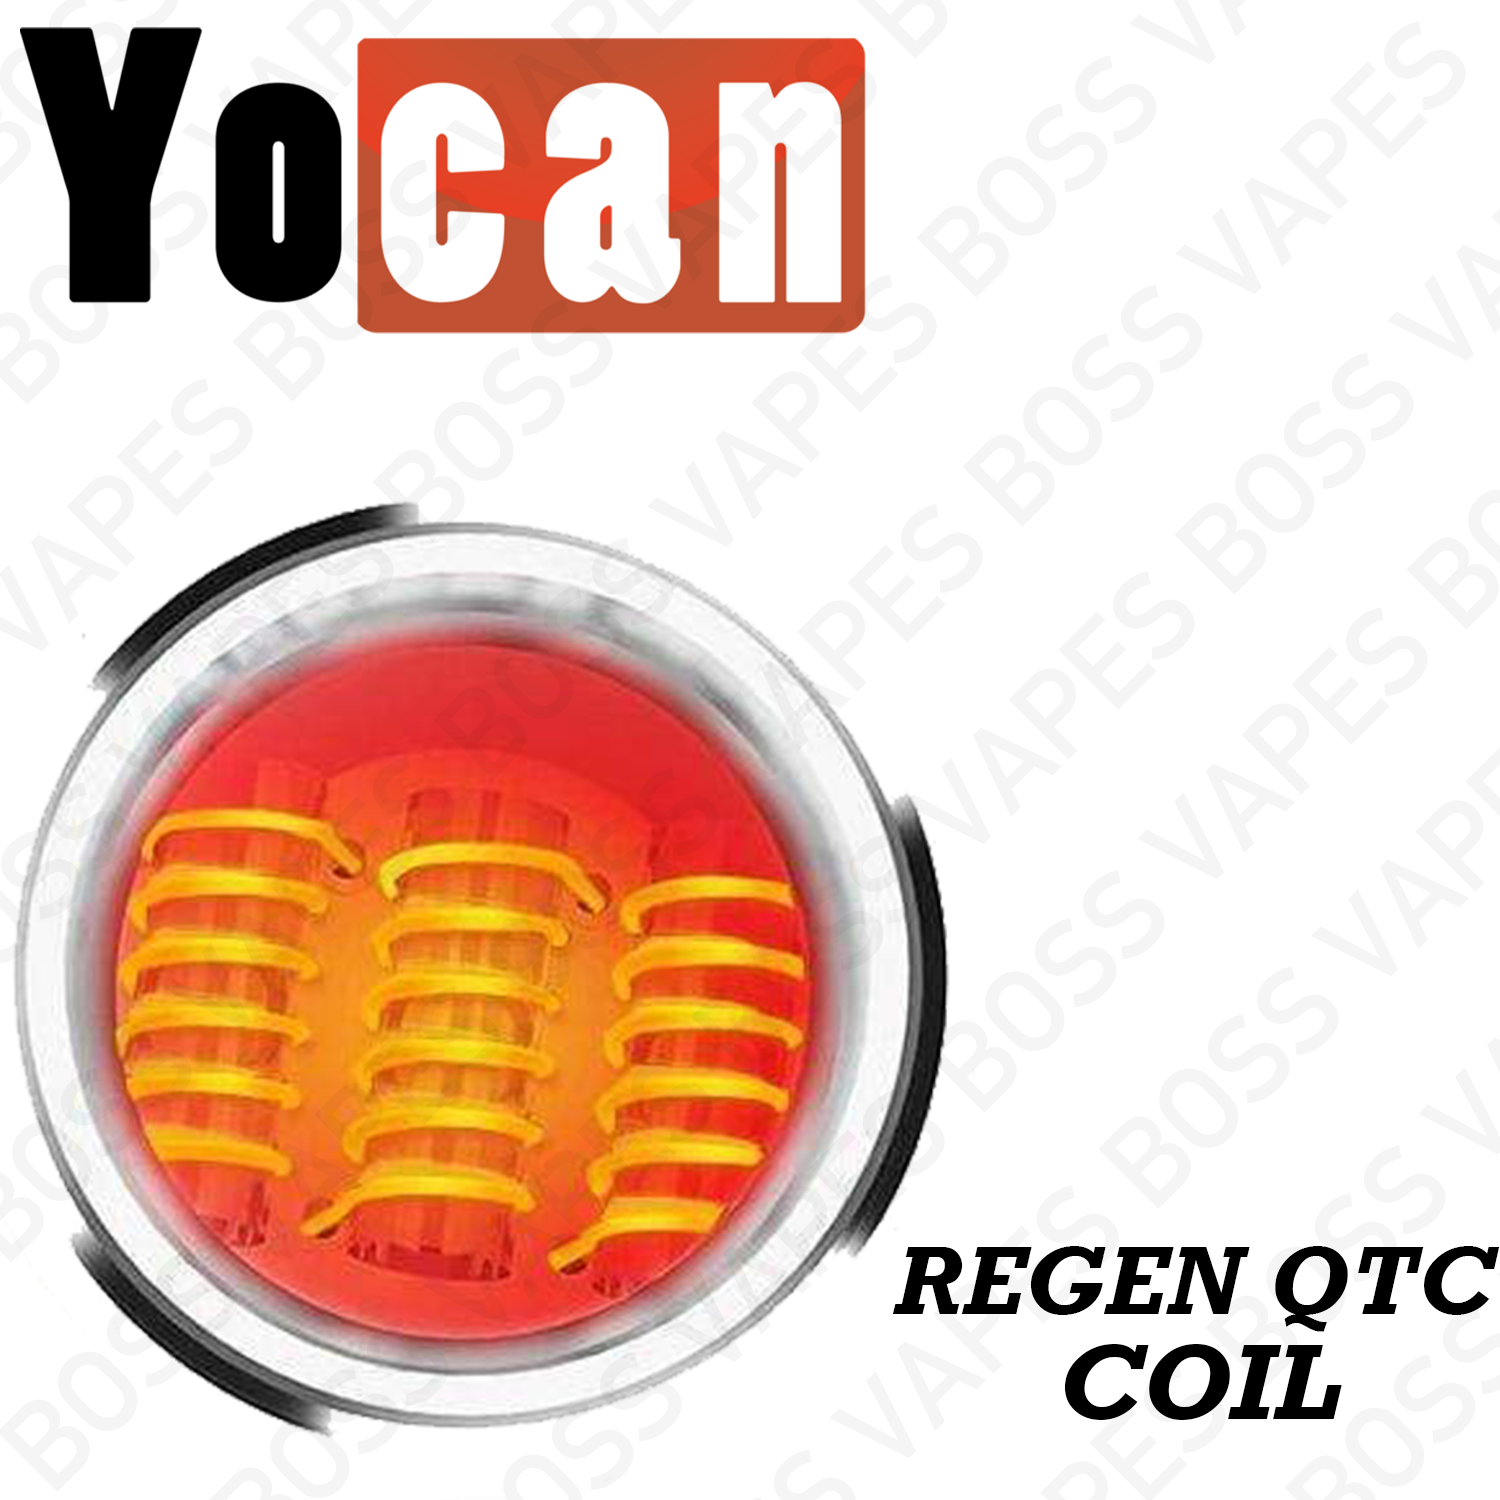 YOCAN REGEN QTC COIL - Priced Individually - Boss Vapes